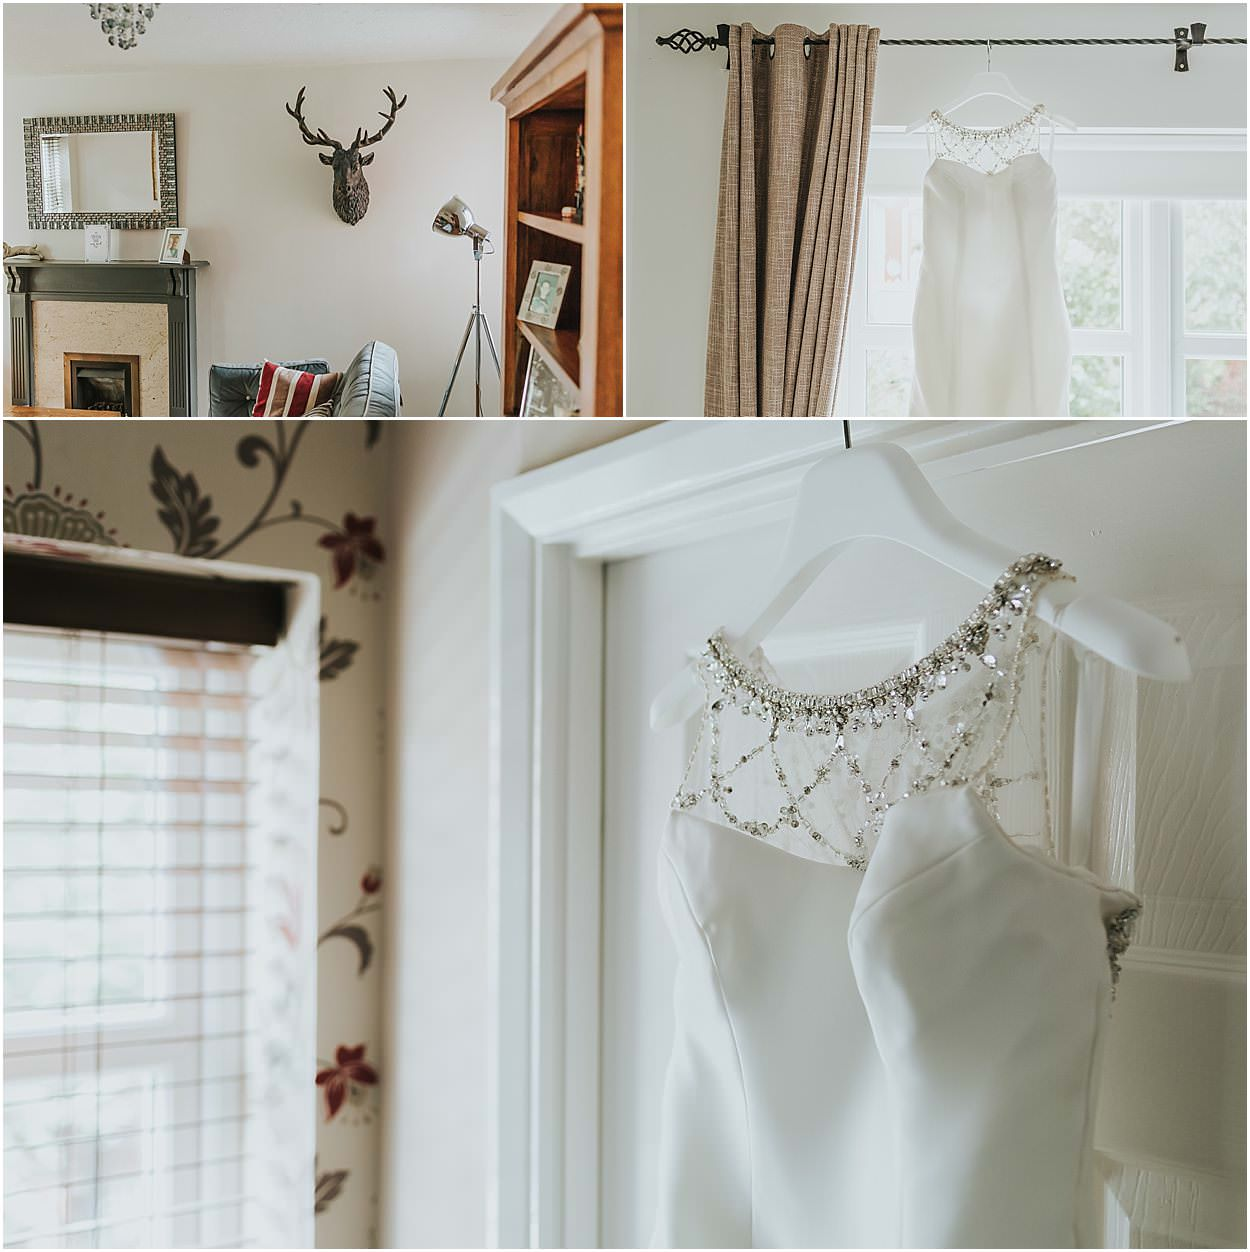 Lincolnshire photography detail shots - top left living room with stag head, top right dress hanging on curtain pole, bottom details of the top of a dress hanging on a door frame